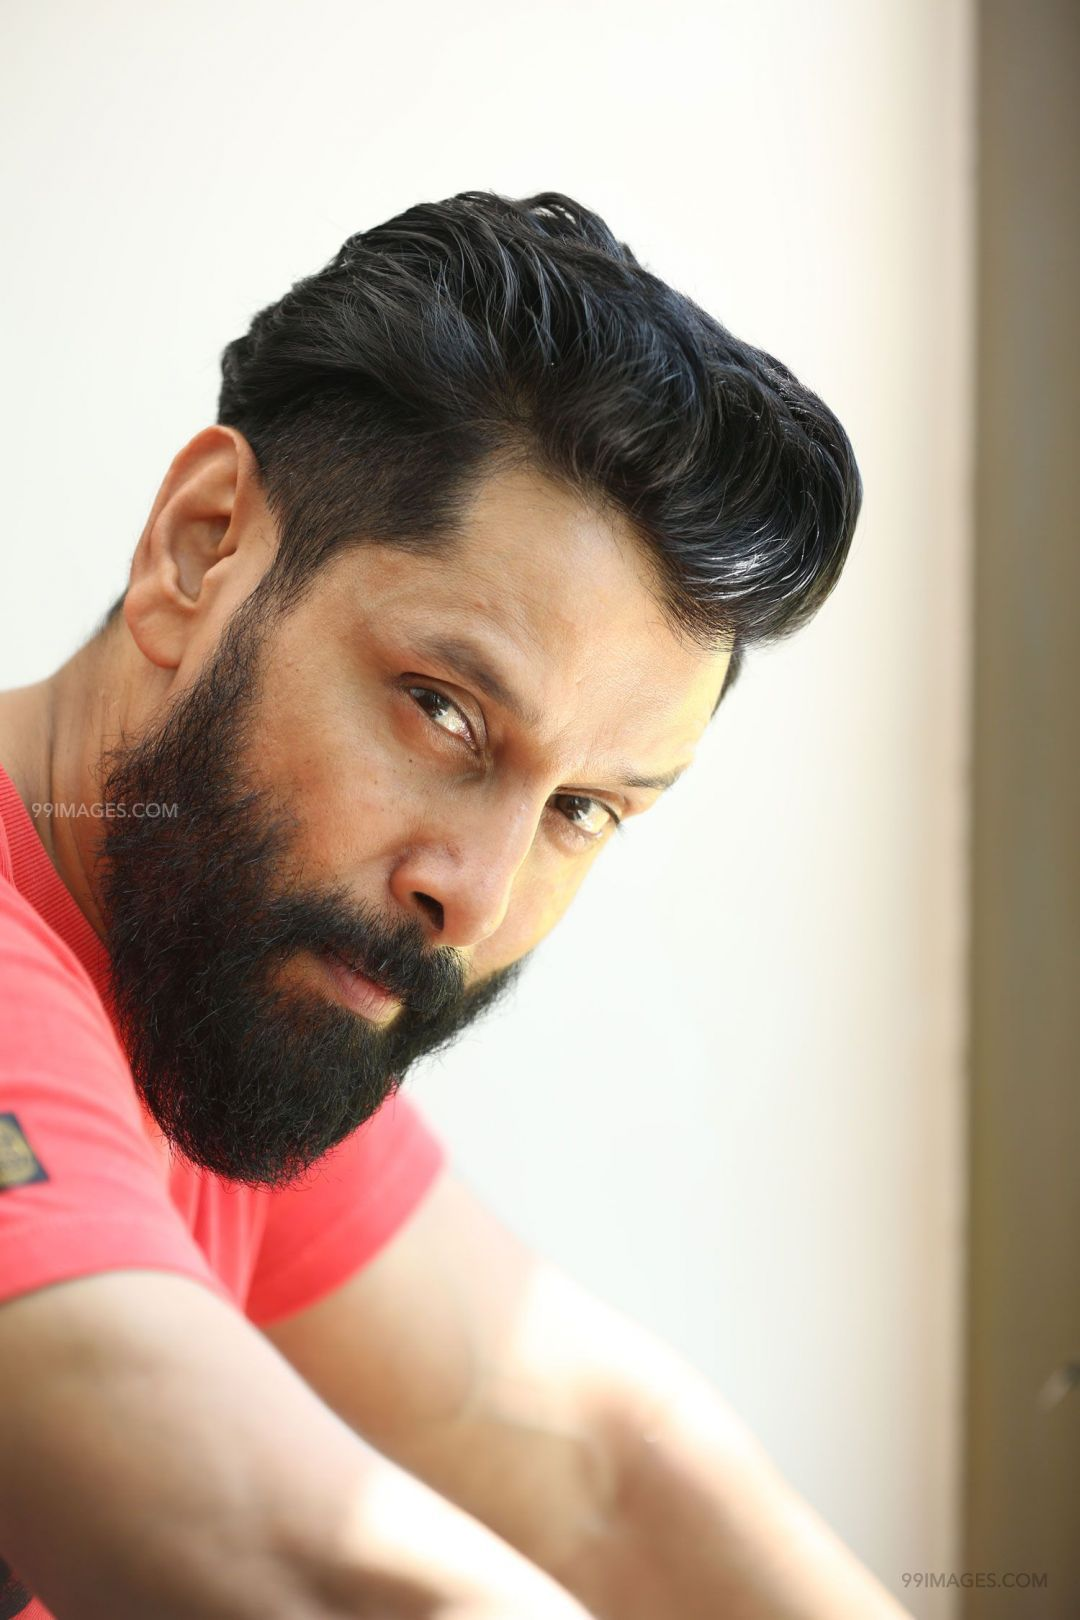 Vikram HD Wallpapers (Desktop Background / Android / iPhone) (1080p, 4k) (158322) - Vikram